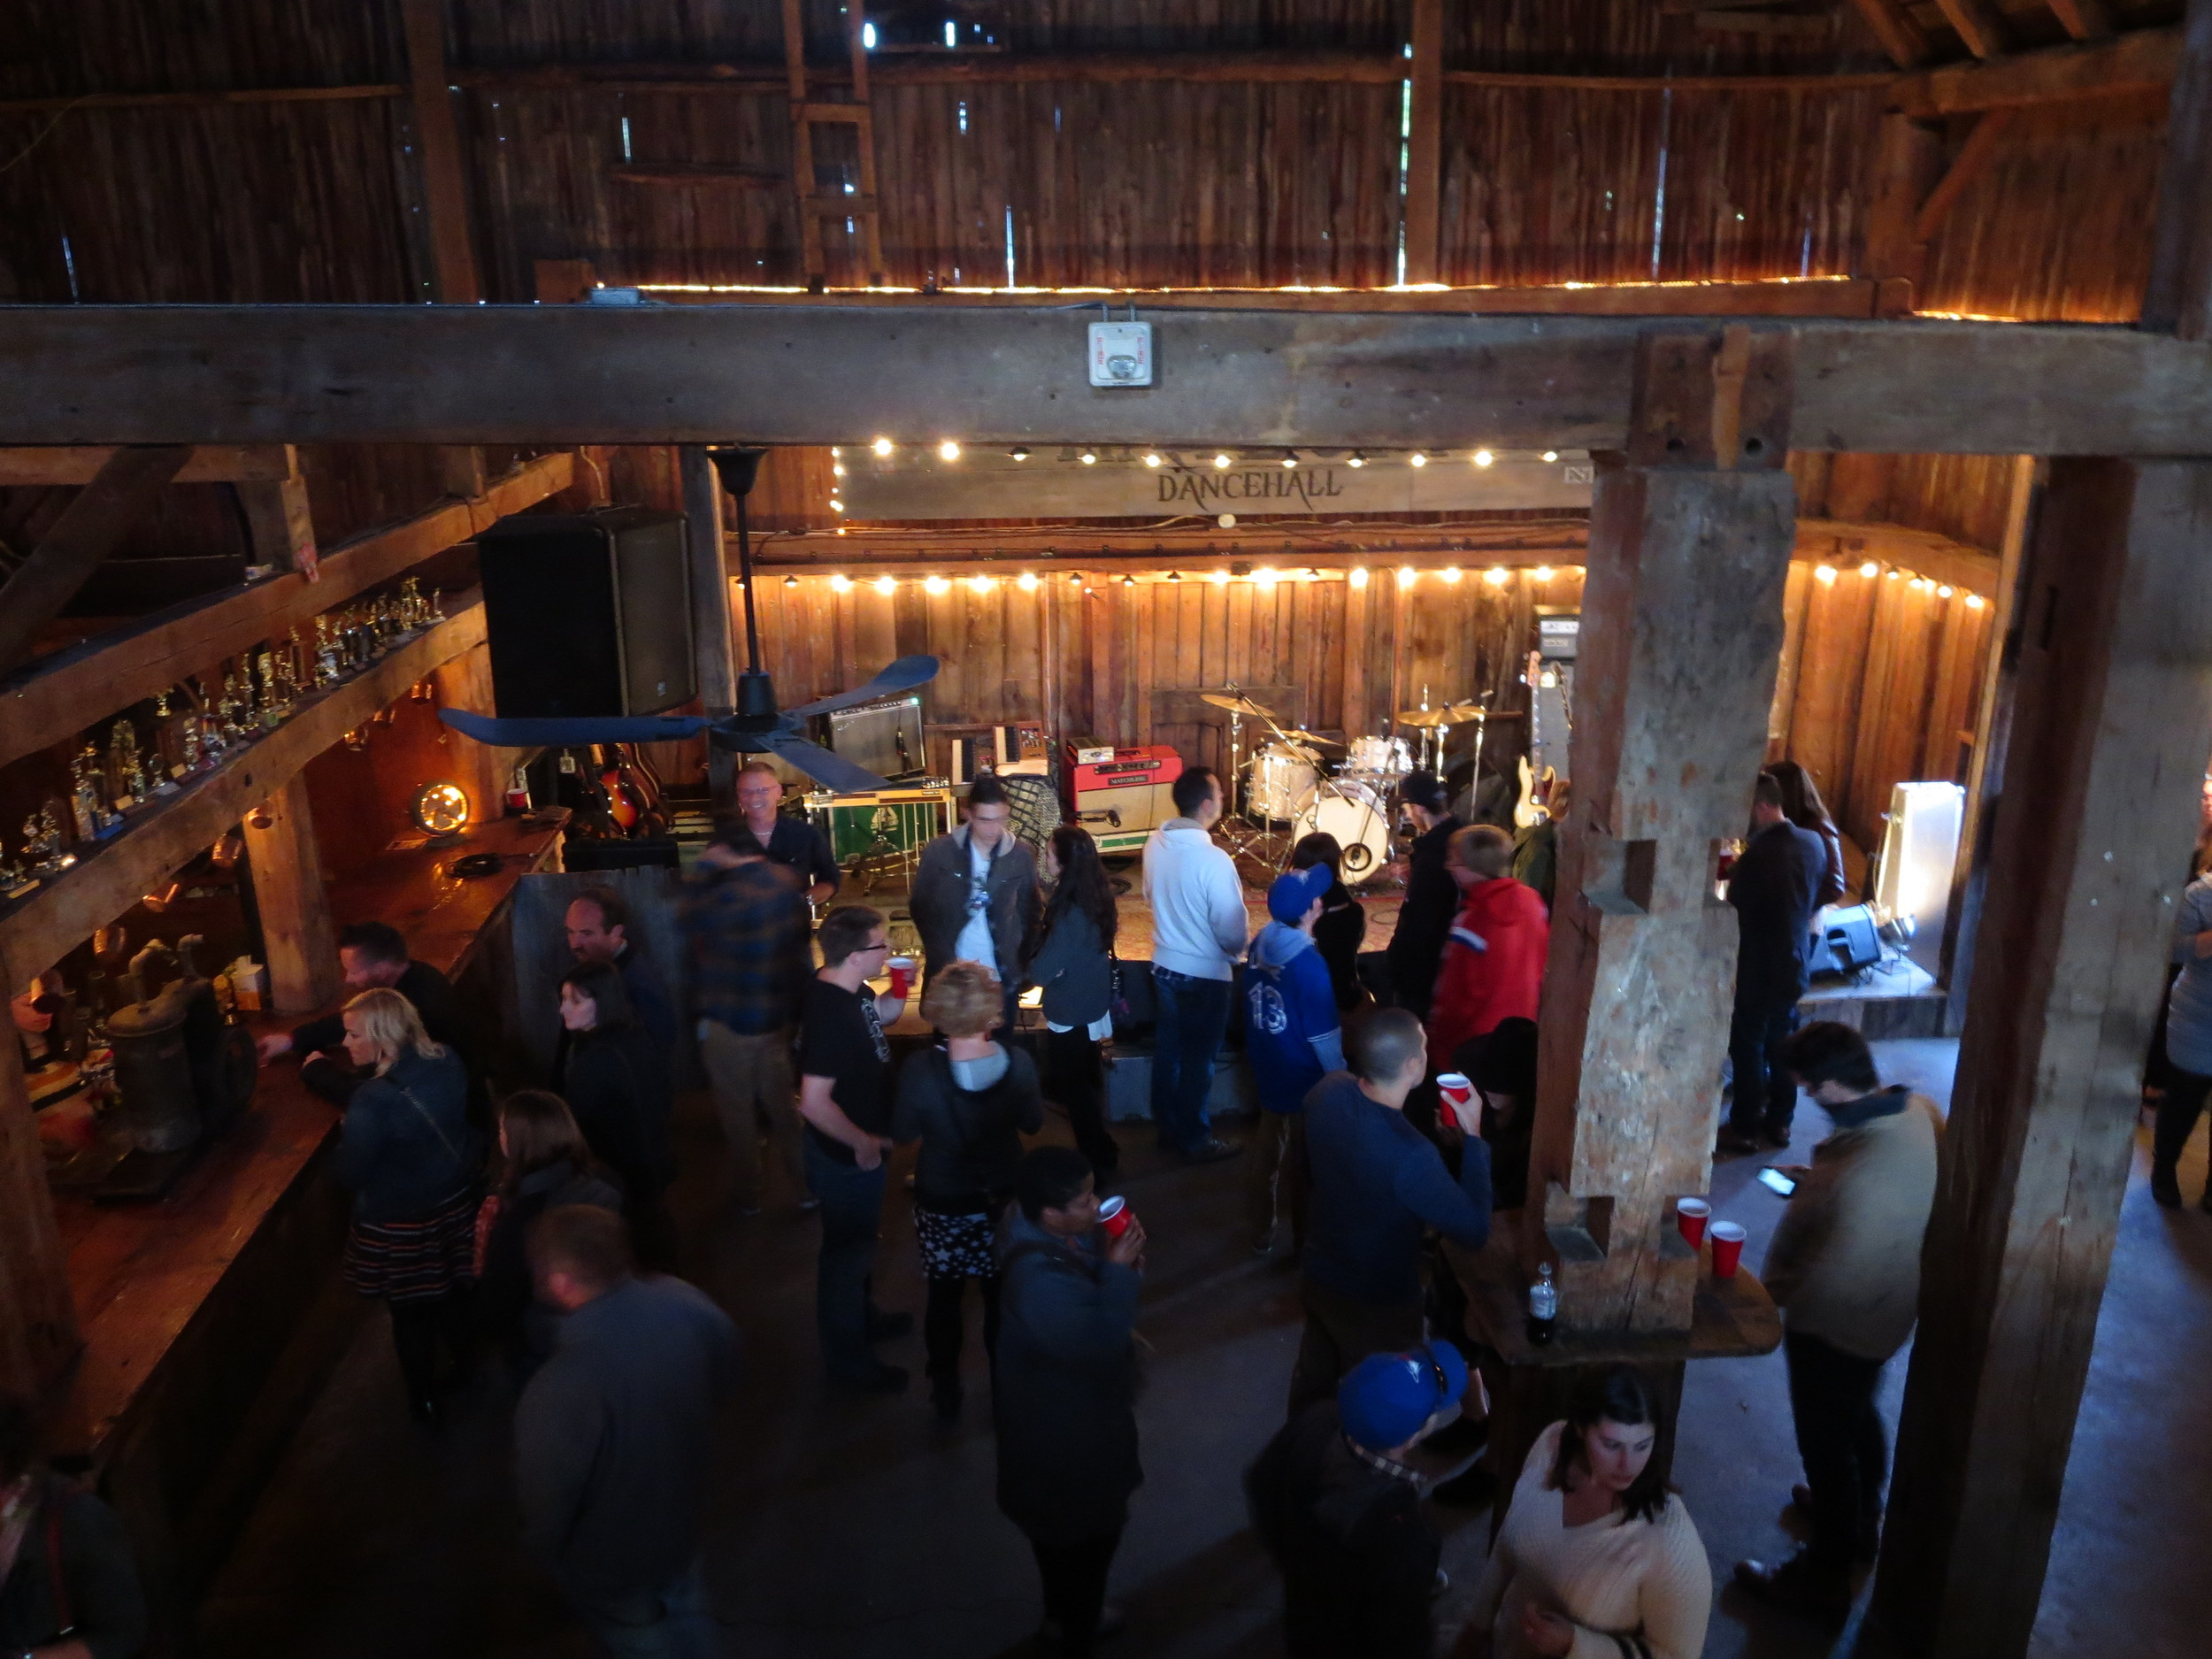 Bird's eye view of The Hayloft